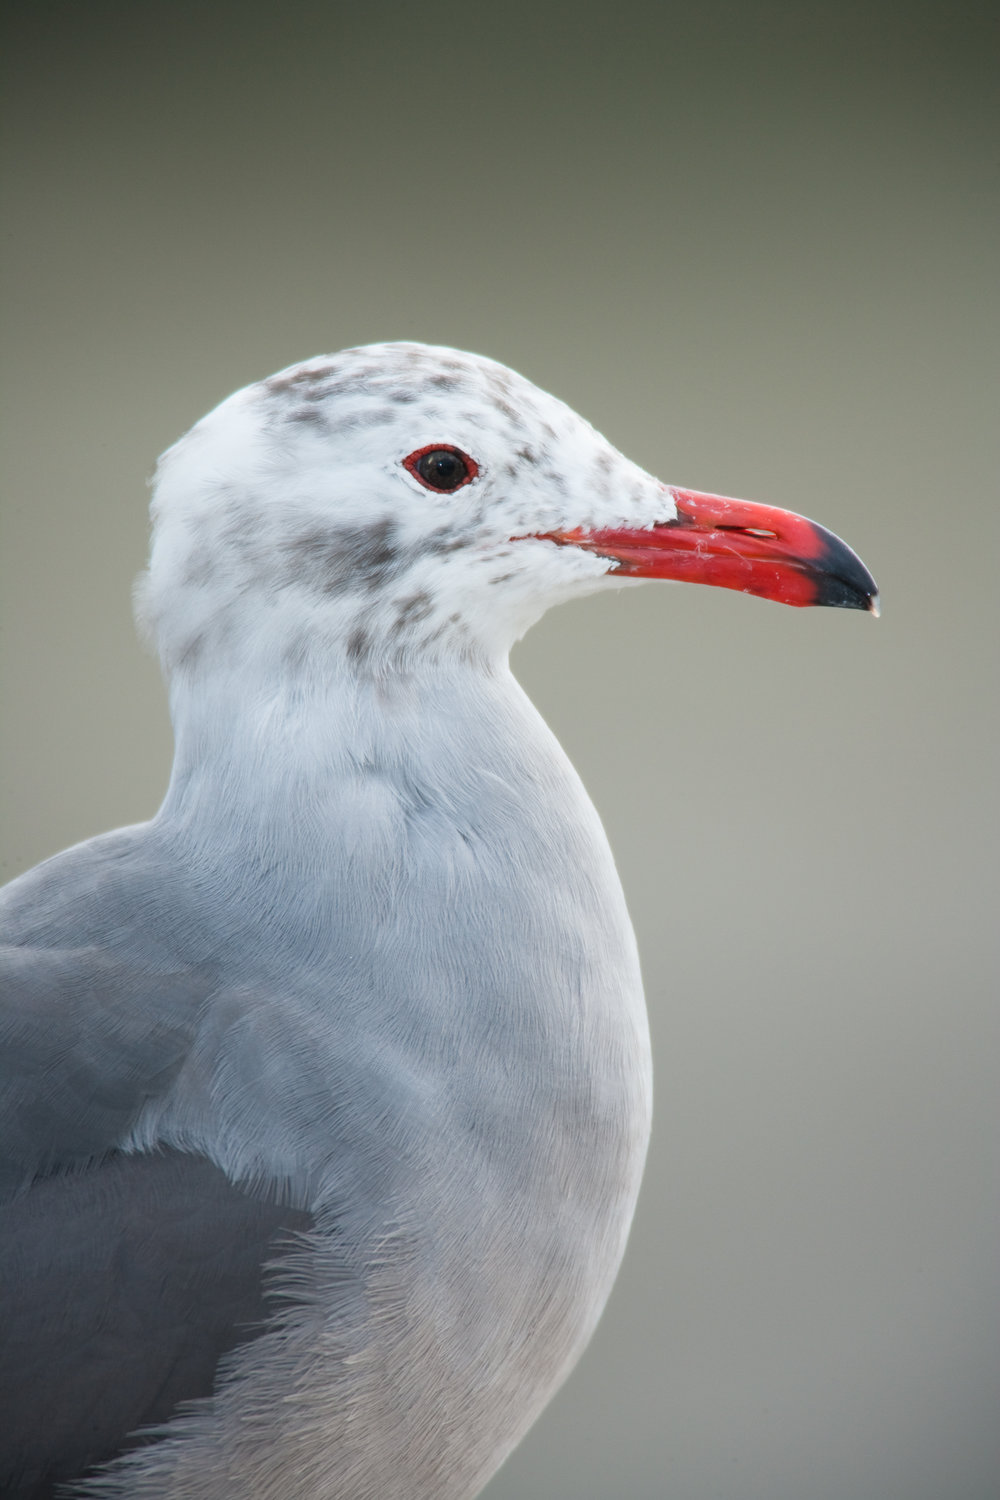 Herman's Gull - Basic Plumage..基羽的红嘴灰鸥